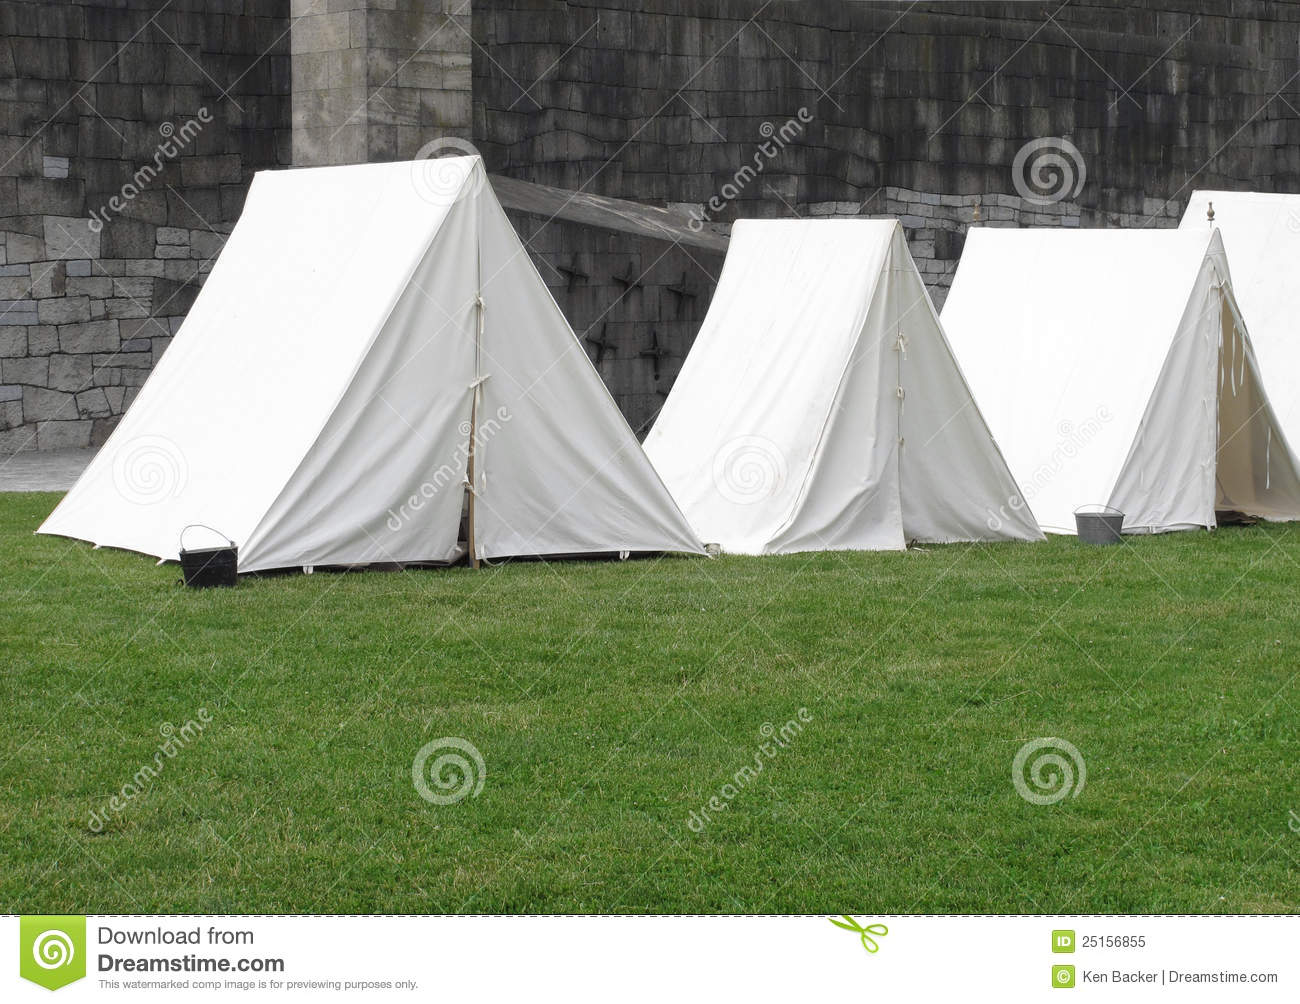 Vintage White Military Army Tents Stock Image - Image of